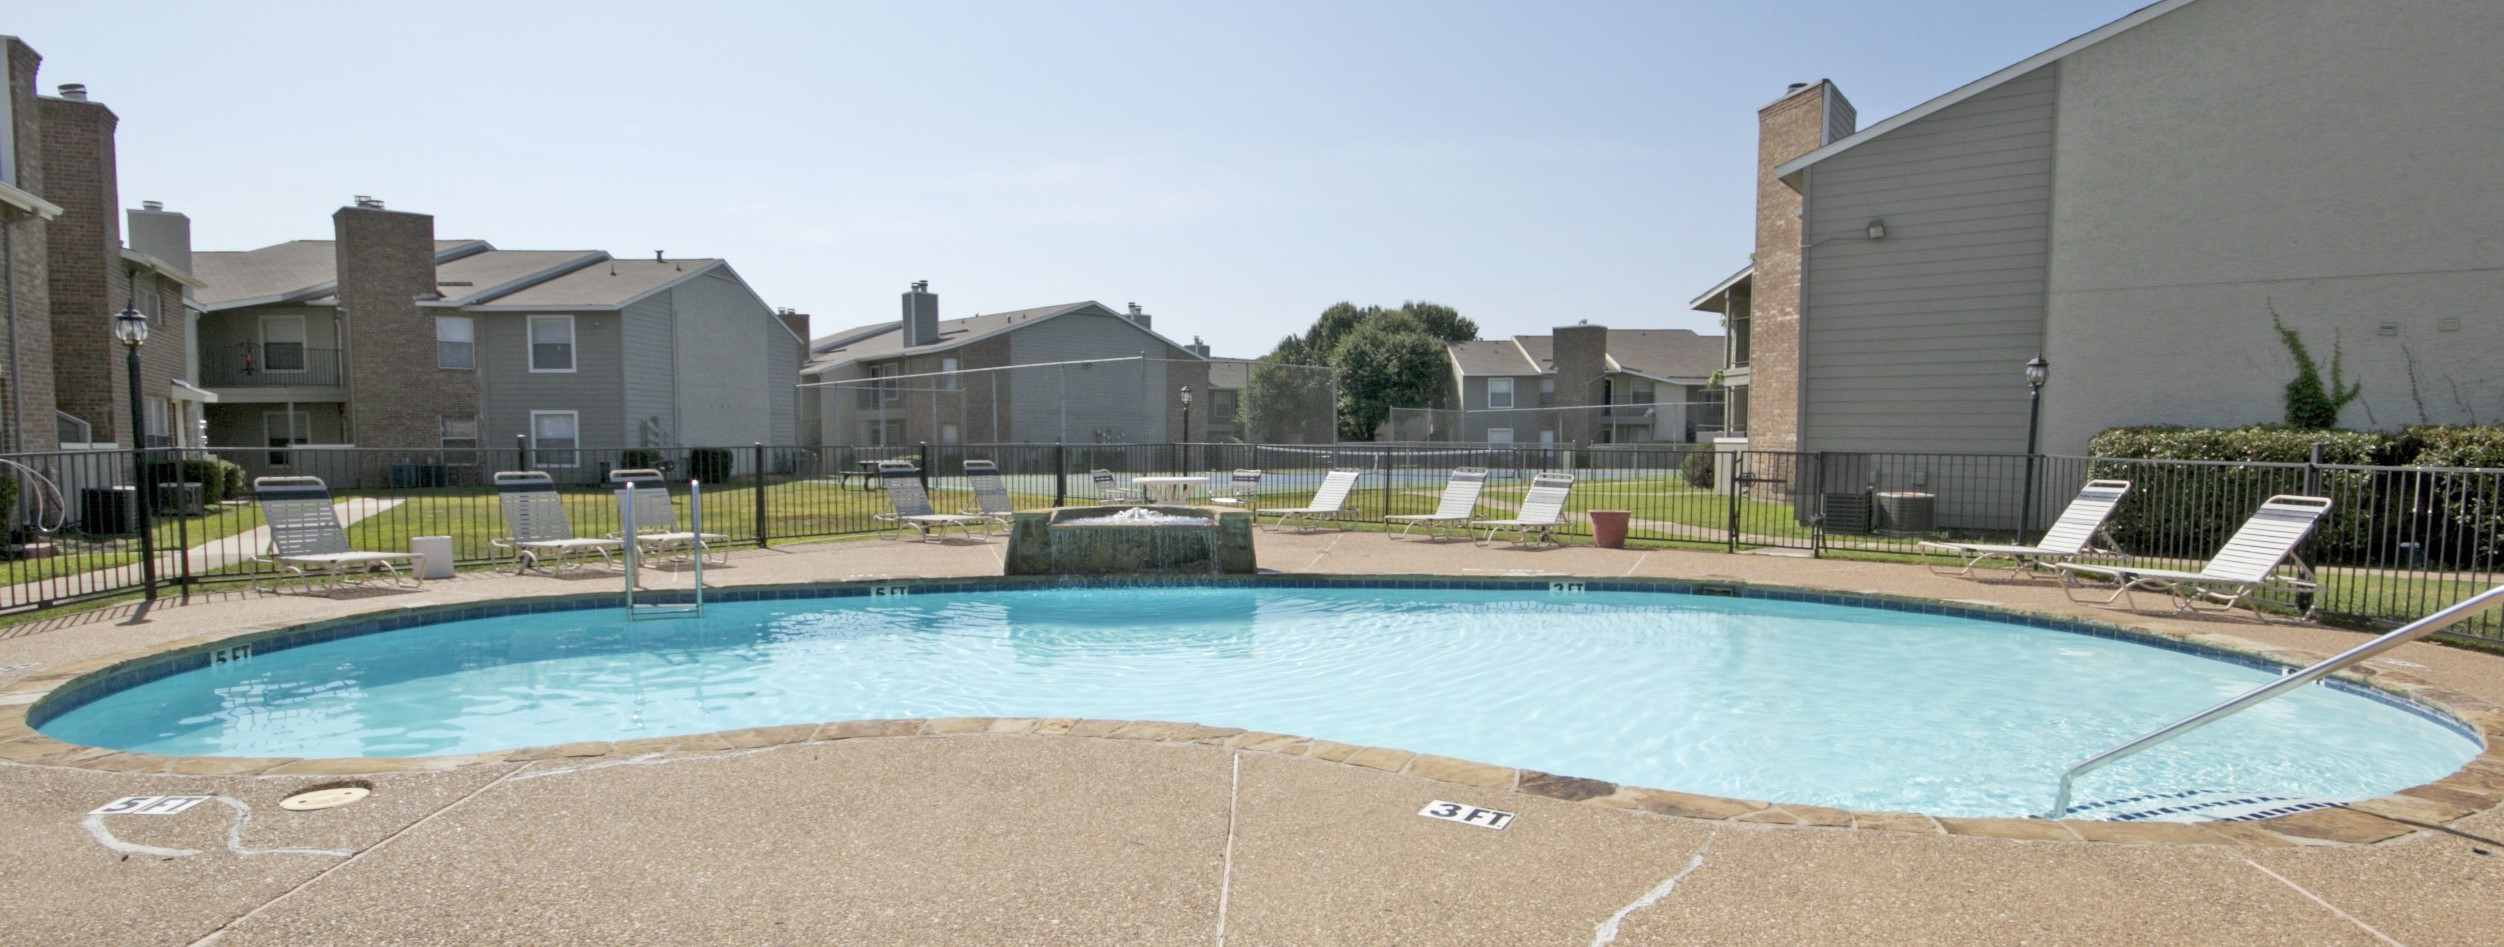 Relaxing Pool with Water Feature at Quail Ridge Apartments in Grand Prairie, Texas